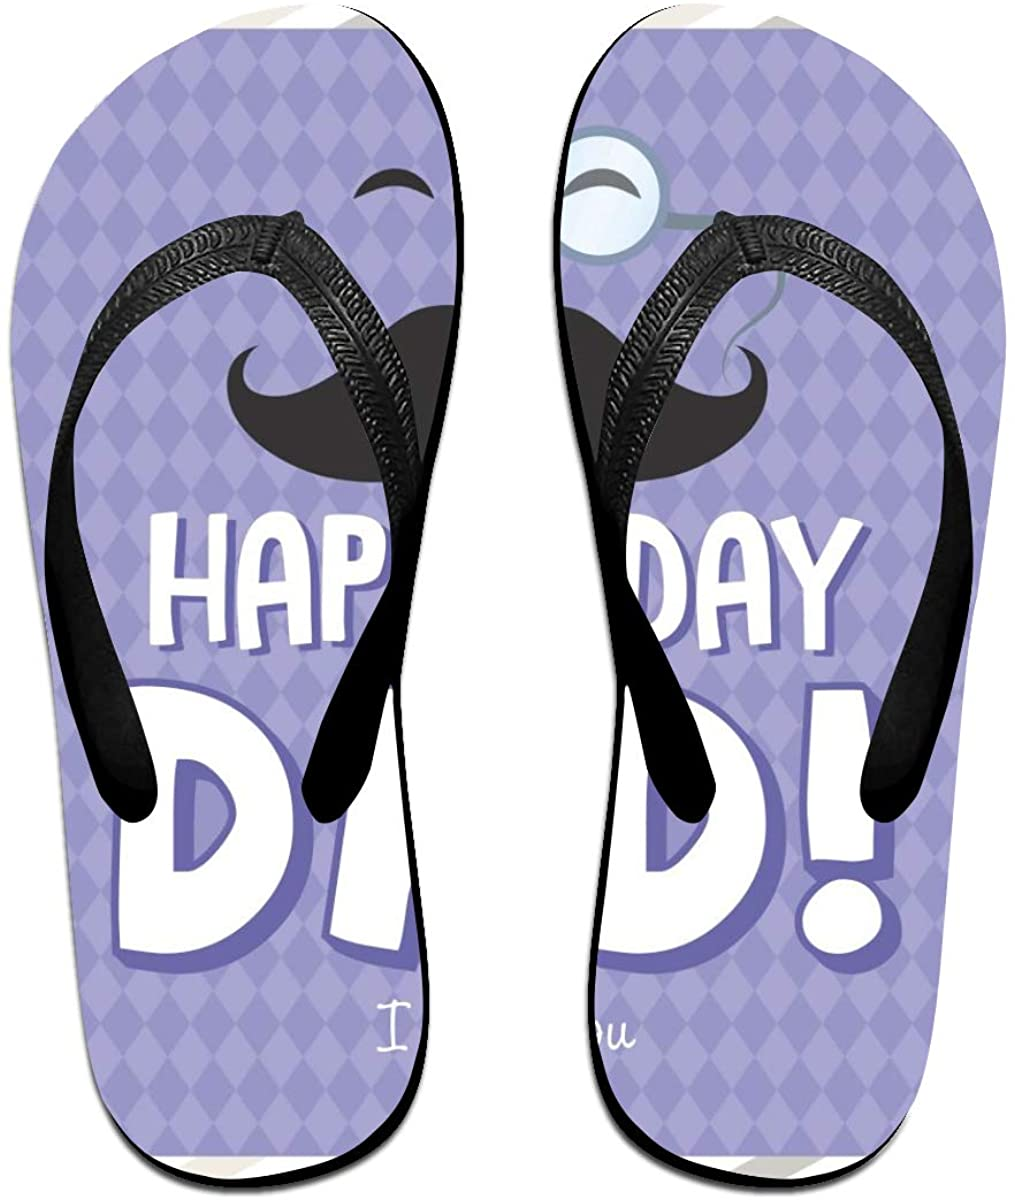 SLHFPX Mens Flip Flop Slippers Father's Day Rubber Cozy Flip Flops Outdoor Beach Sandals